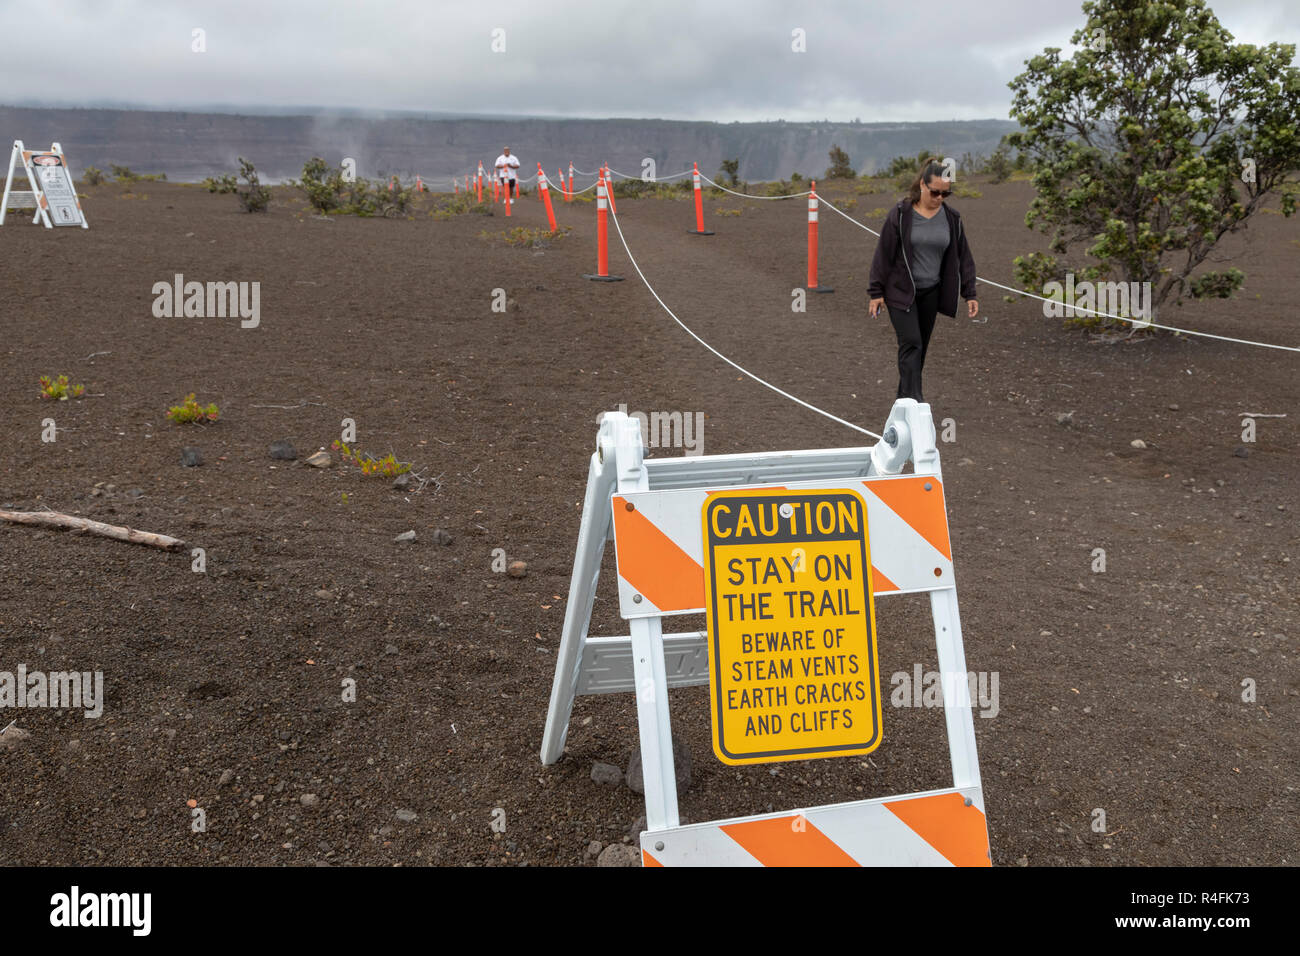 Hawaii Volcanoes National Park, Hawaii - A sign warns visitors about hazards following the 2018 eruption of the Kilauea volcano. - Stock Image